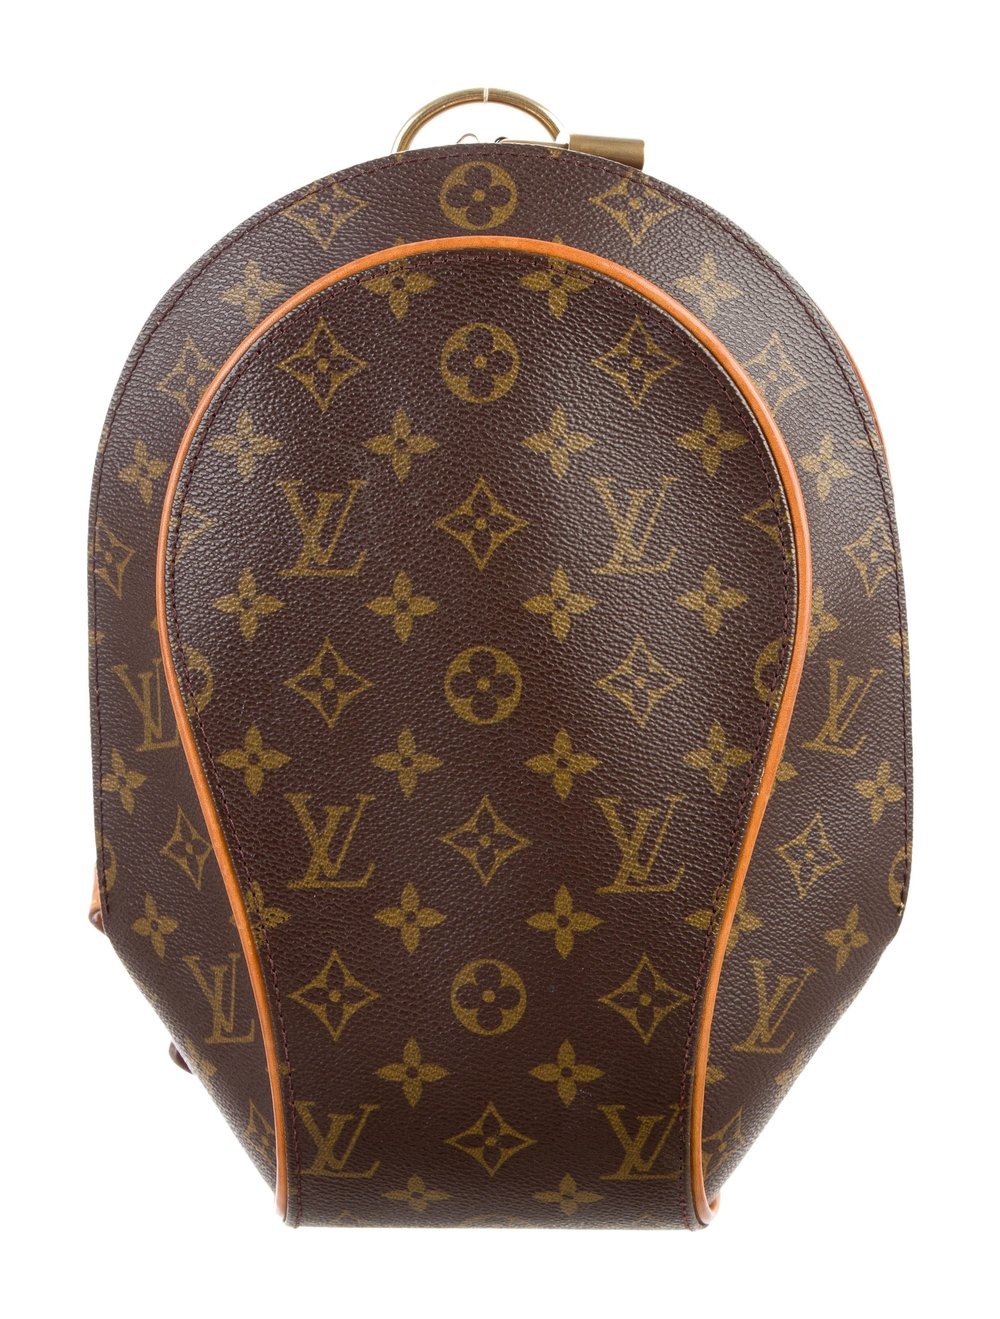 LOUIS VUITTON    Monogram Ellipse Backpack, $625, therealreal.com